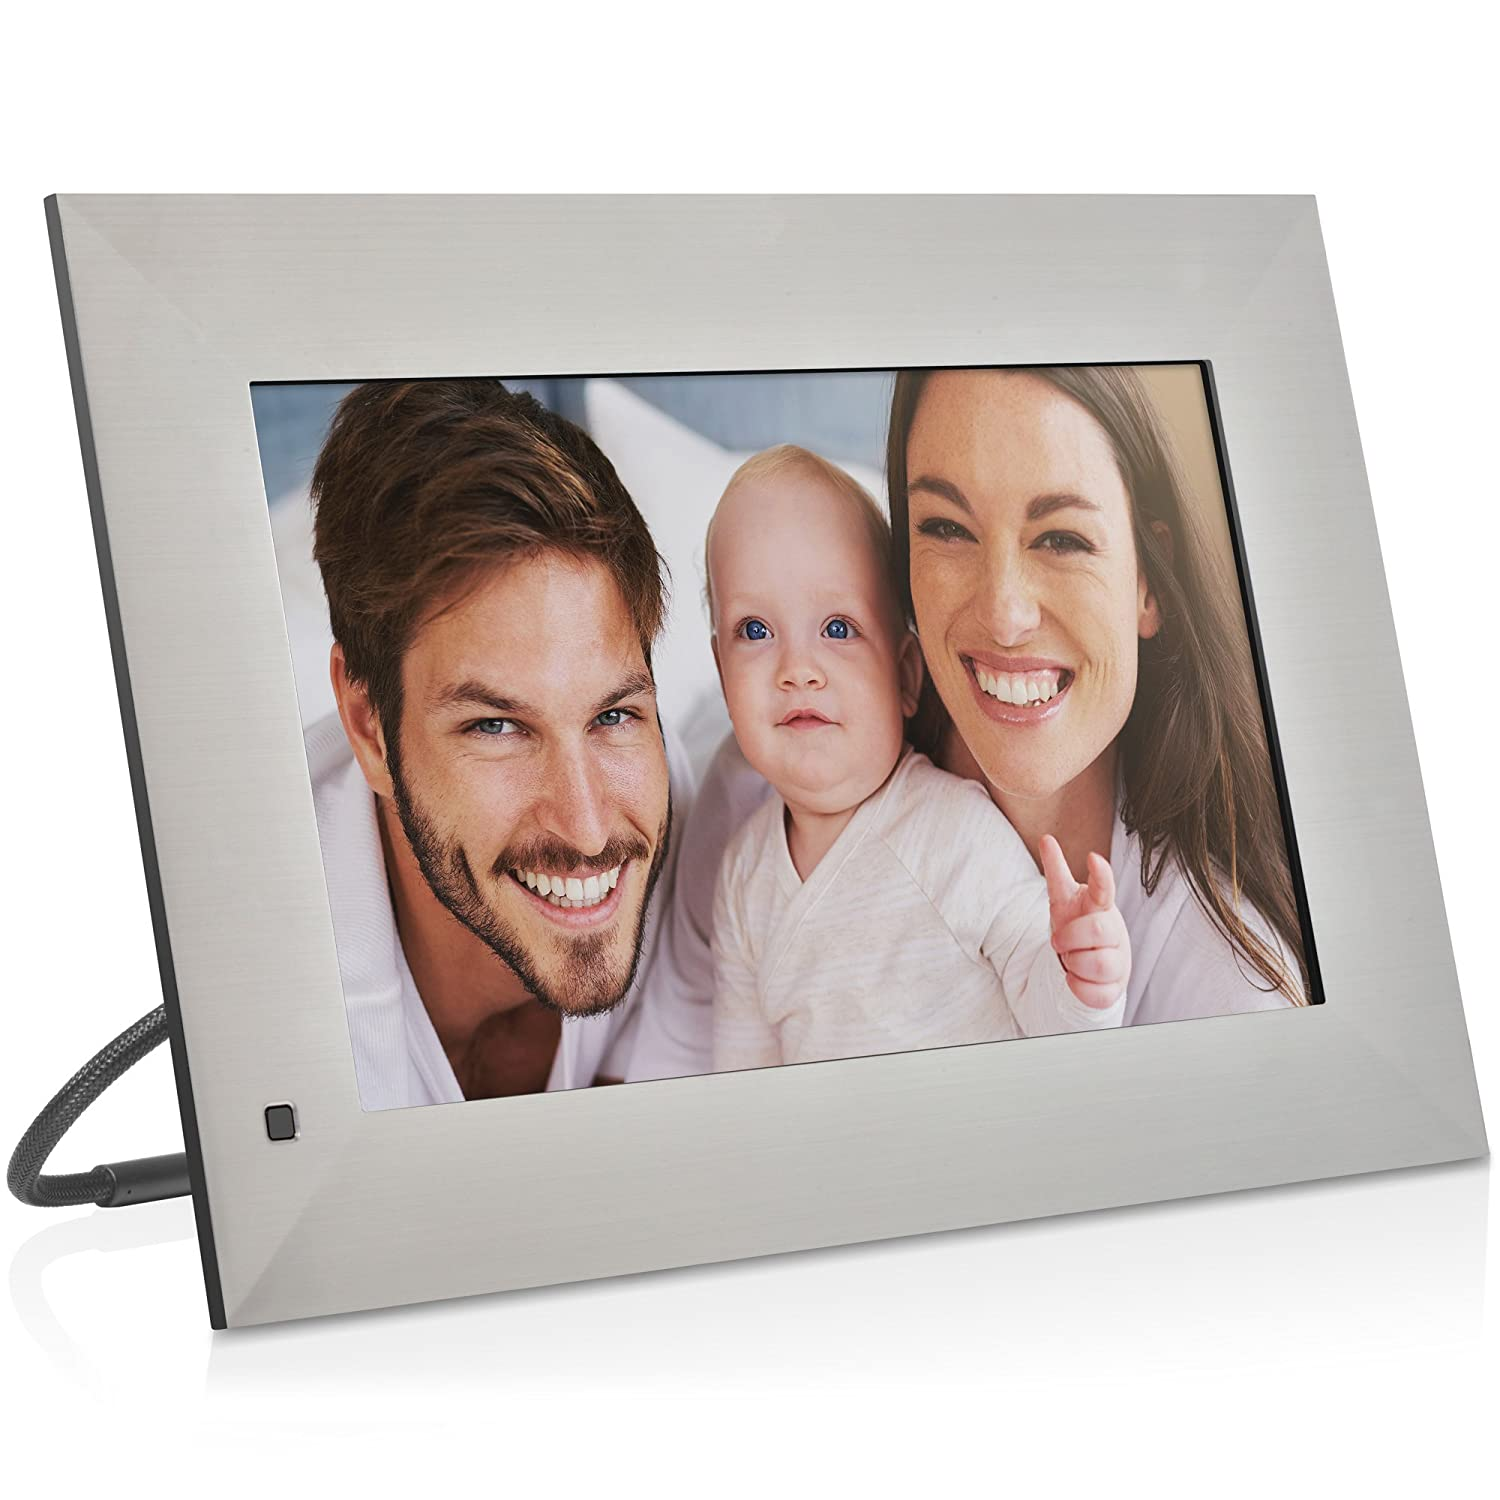 Amazon.com : NIX Lux 13.3 Inch Hi-Res Digital Photo & Full HD Video ...